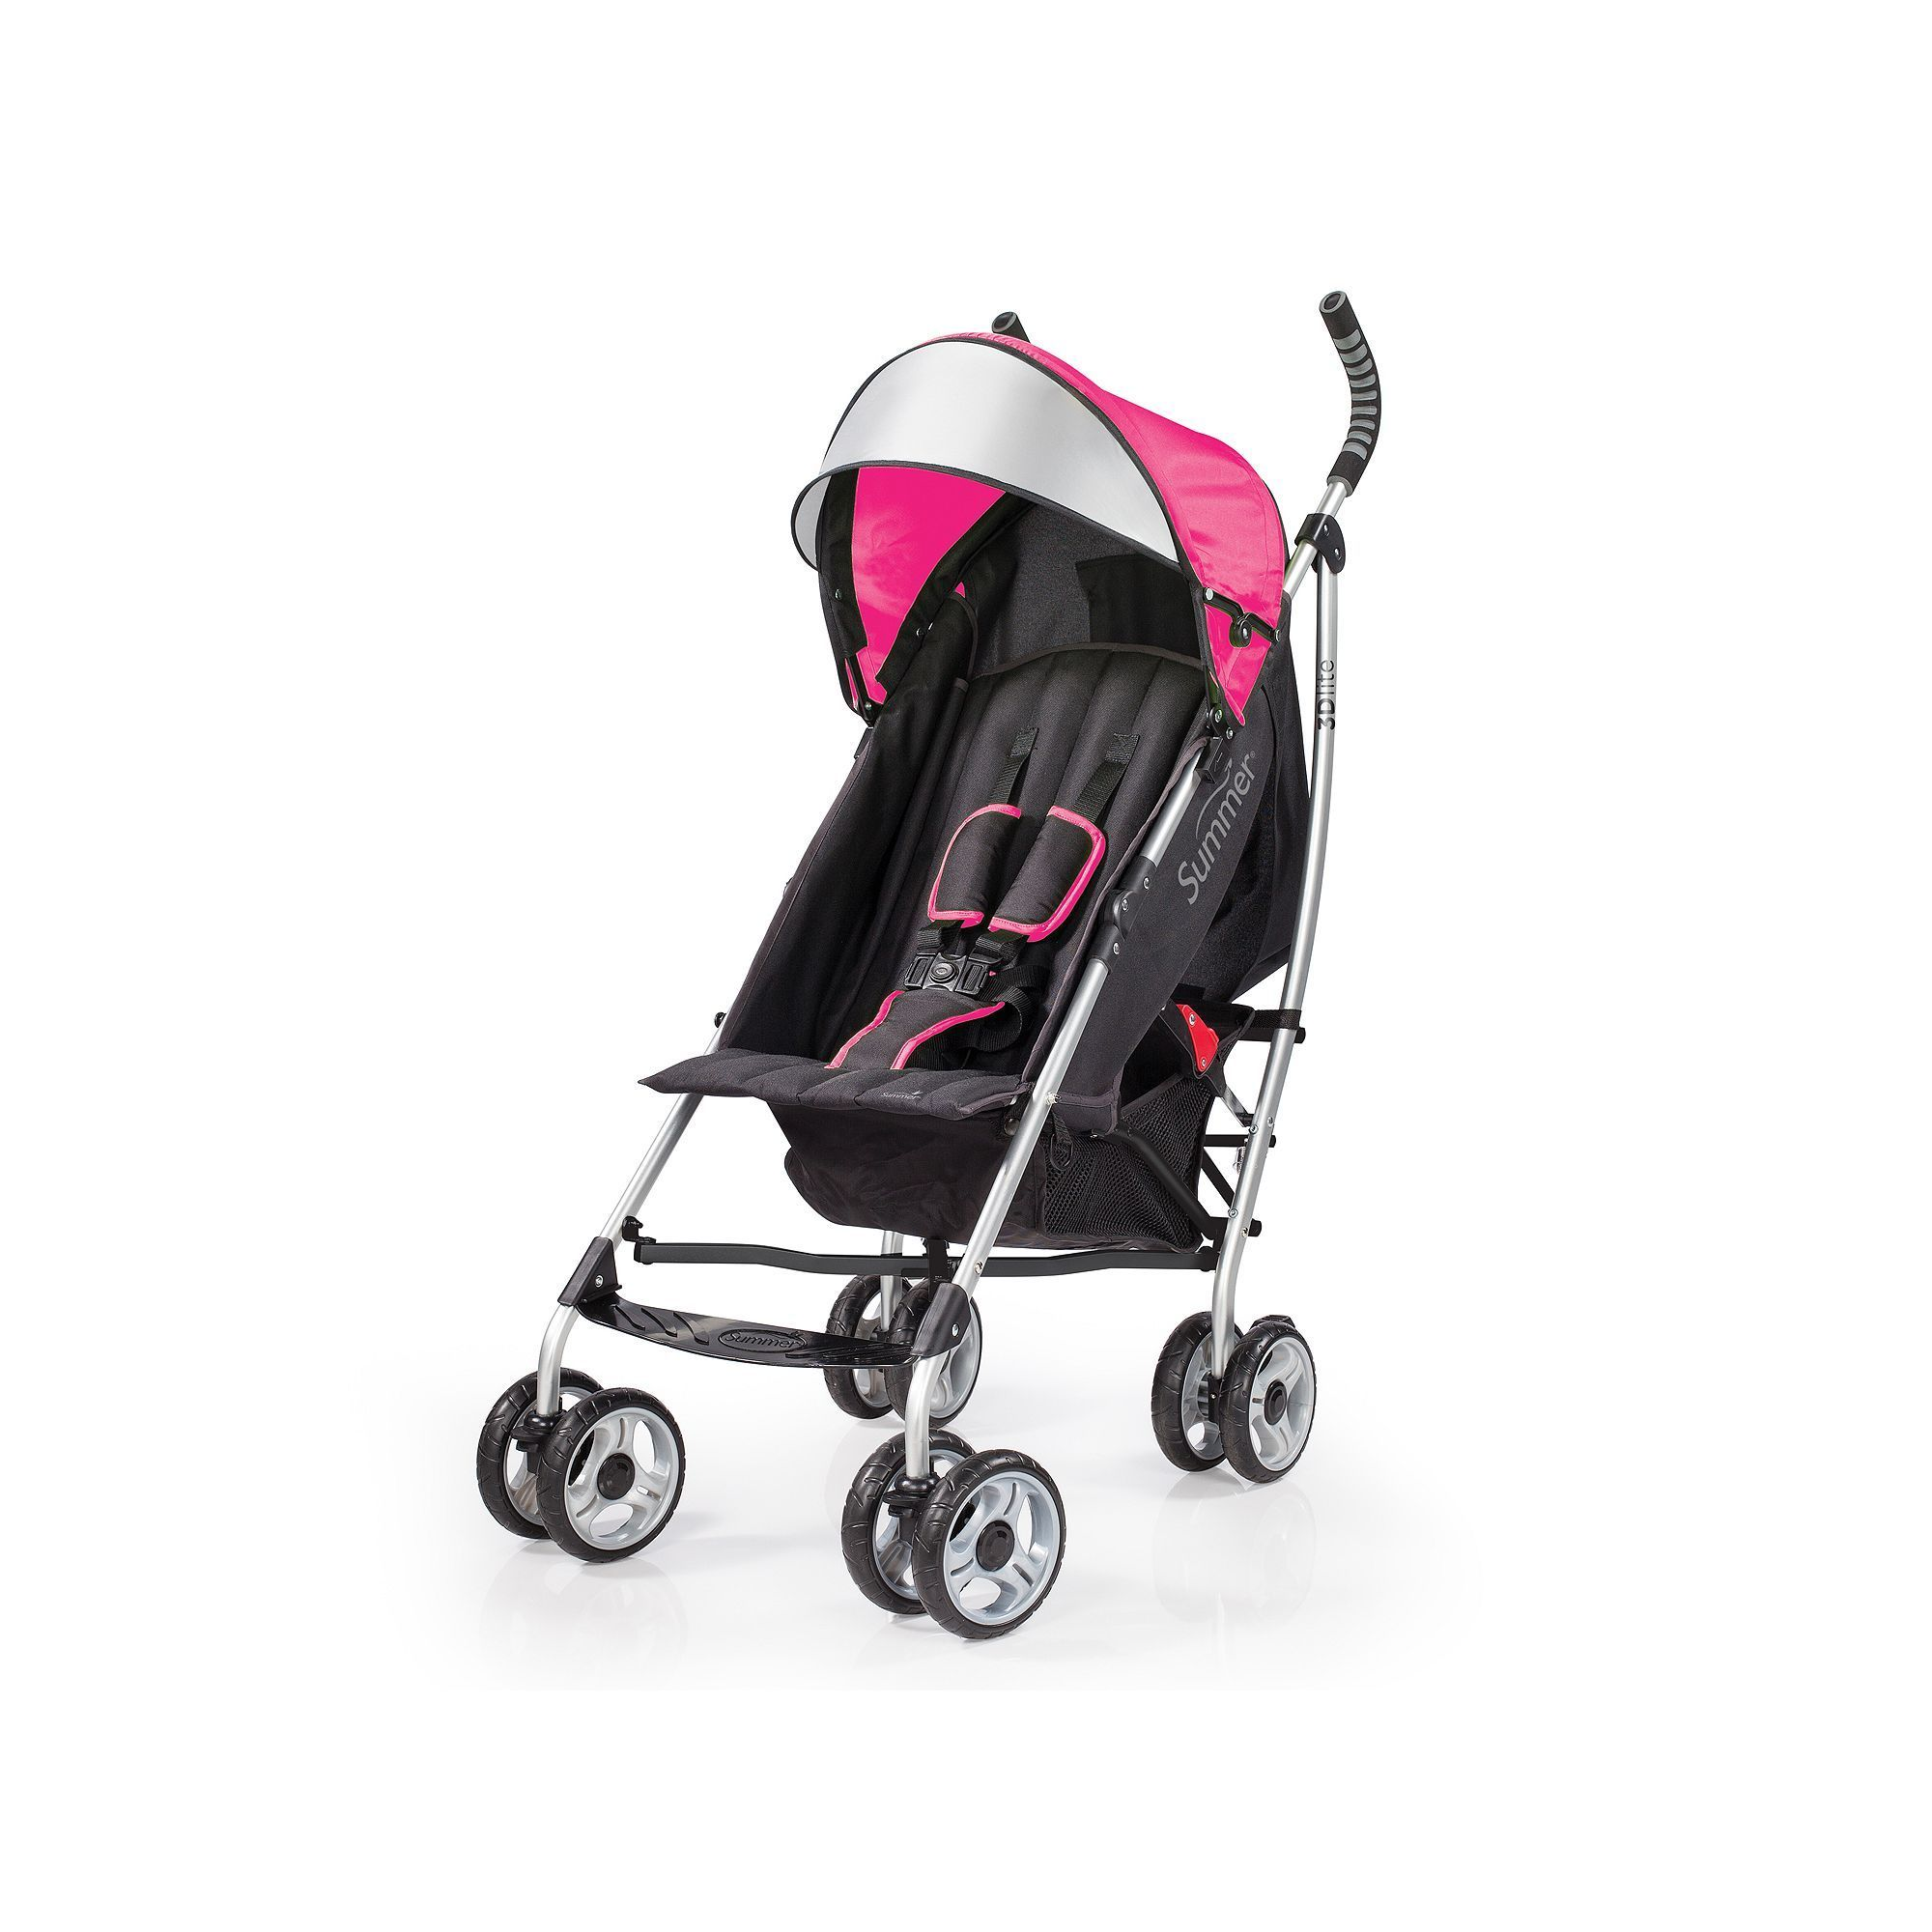 Delta Children LX Side by Side Tandem Umbrella Stroller ly $54 71 was $89 99